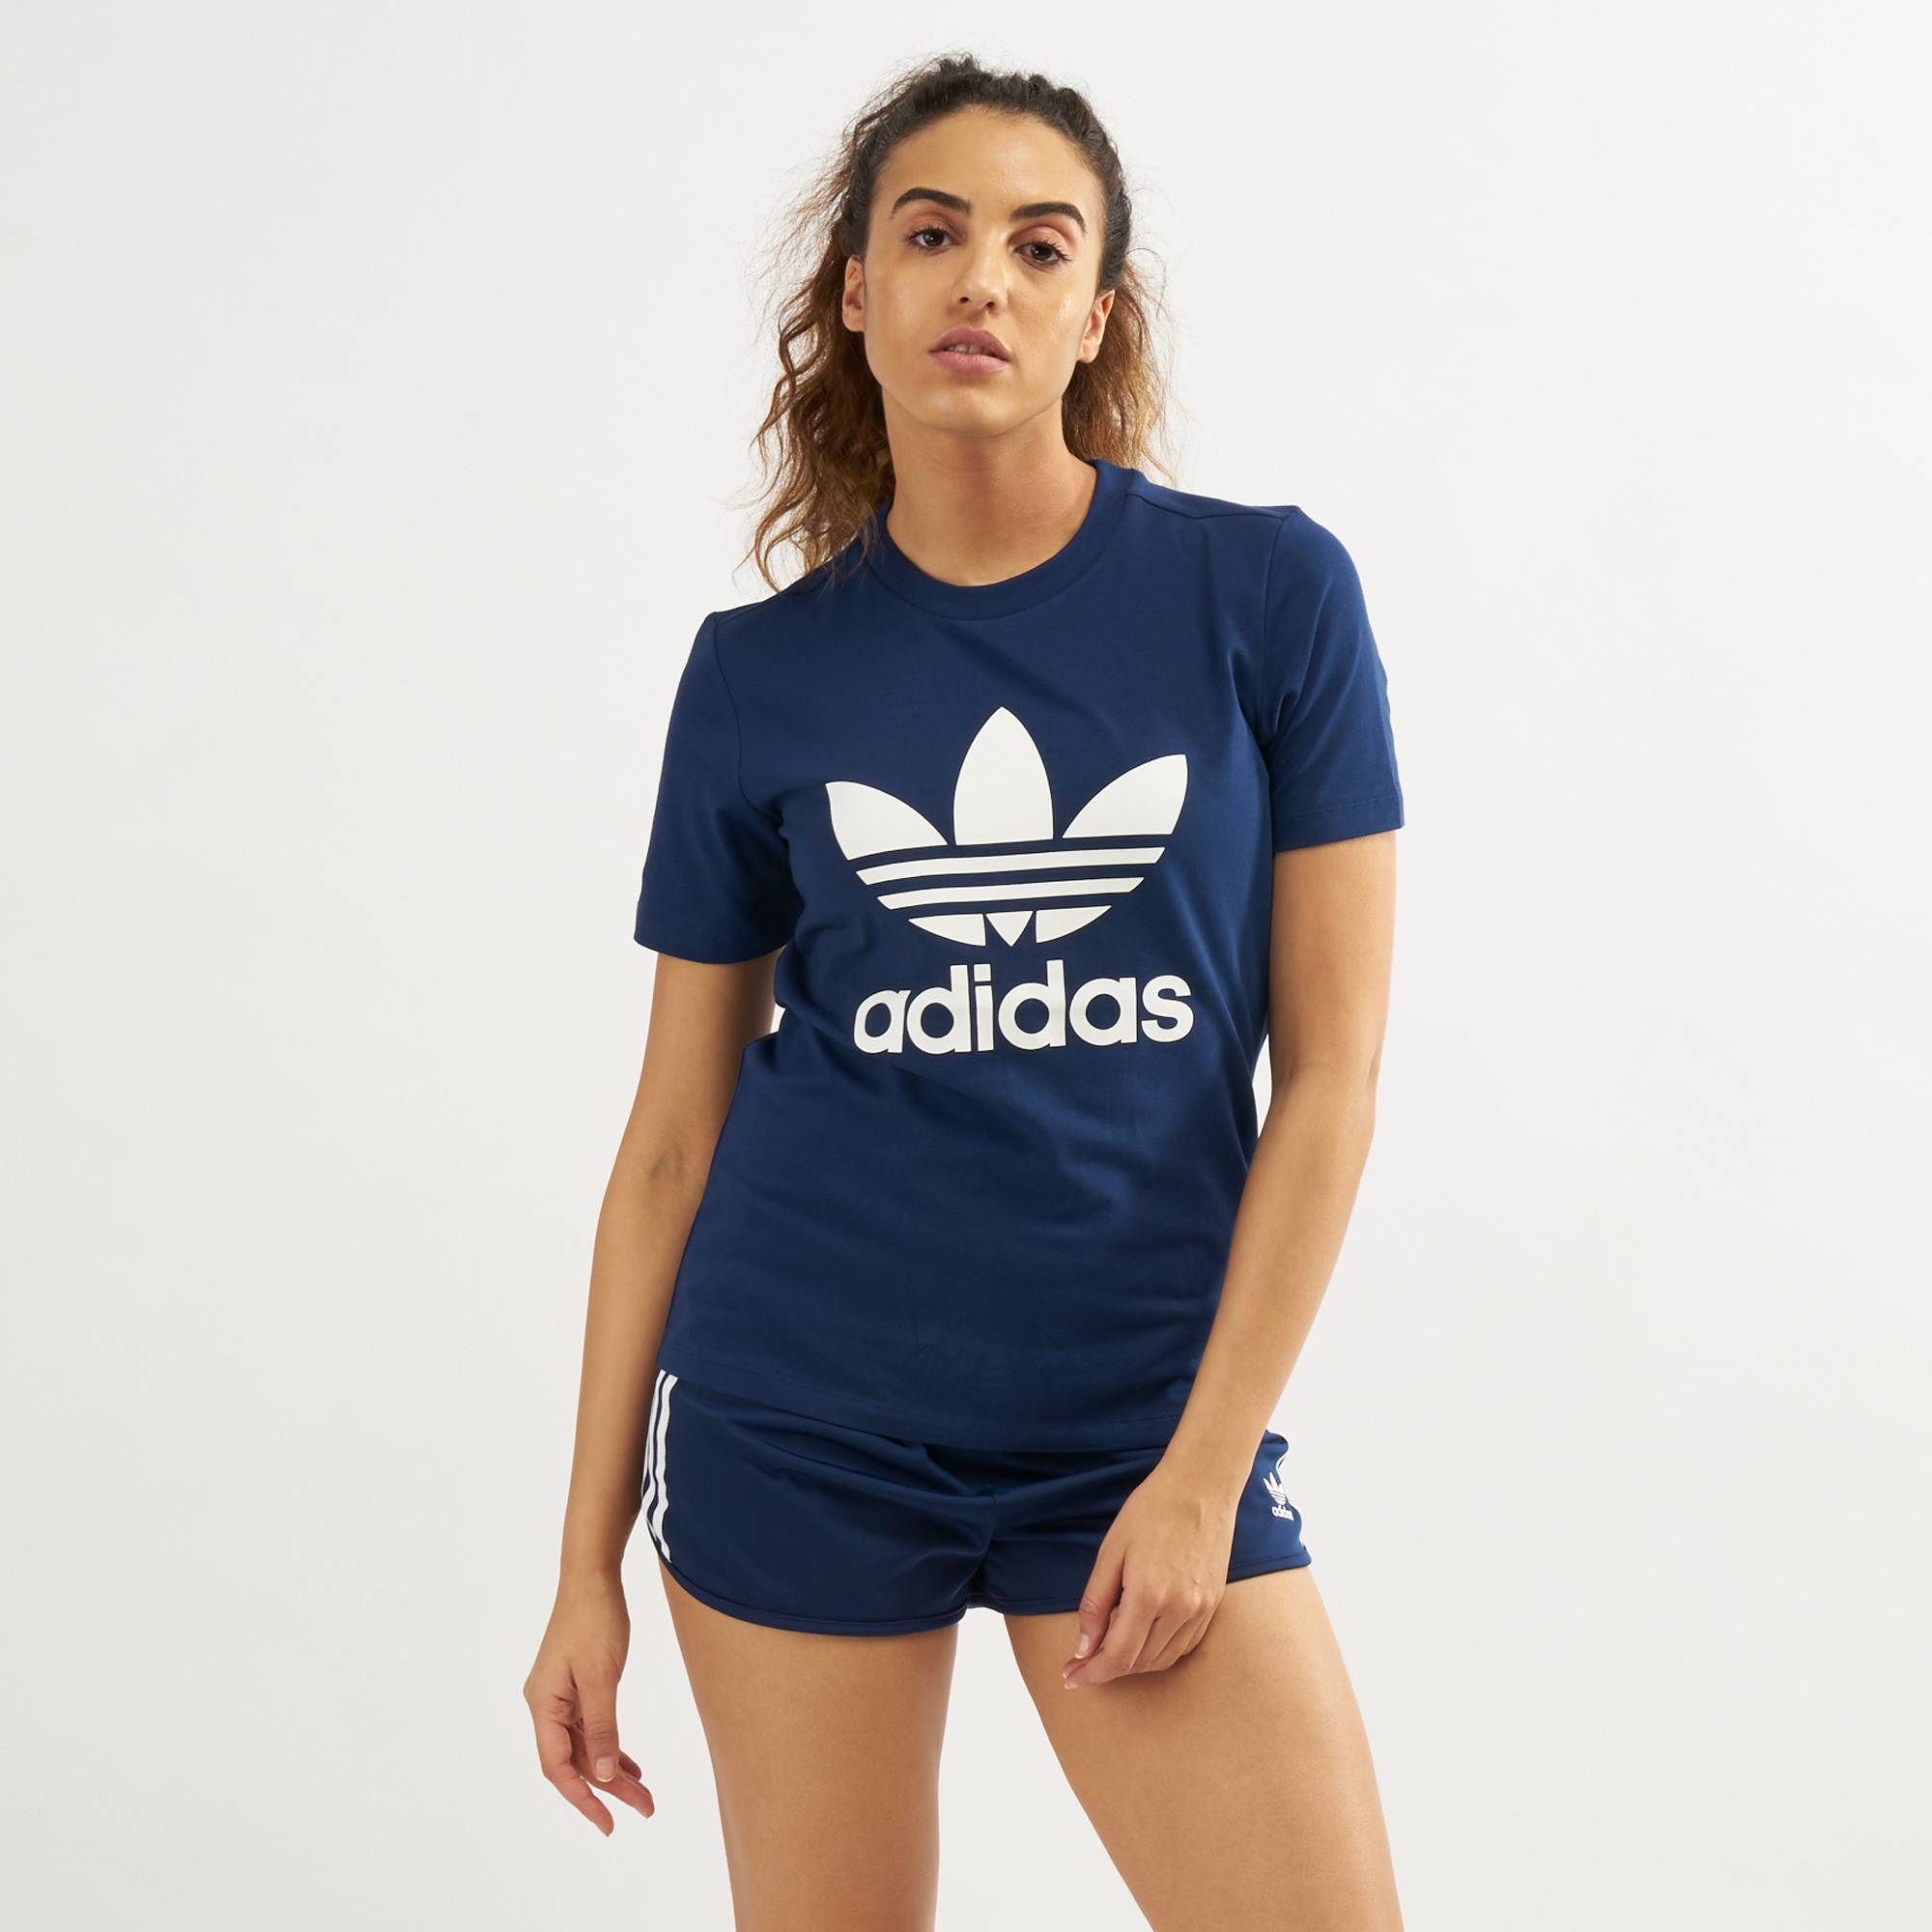 63503330a Adidas Originals Trefoil S S Logo T Shirt Womens – EDGE Engineering ...